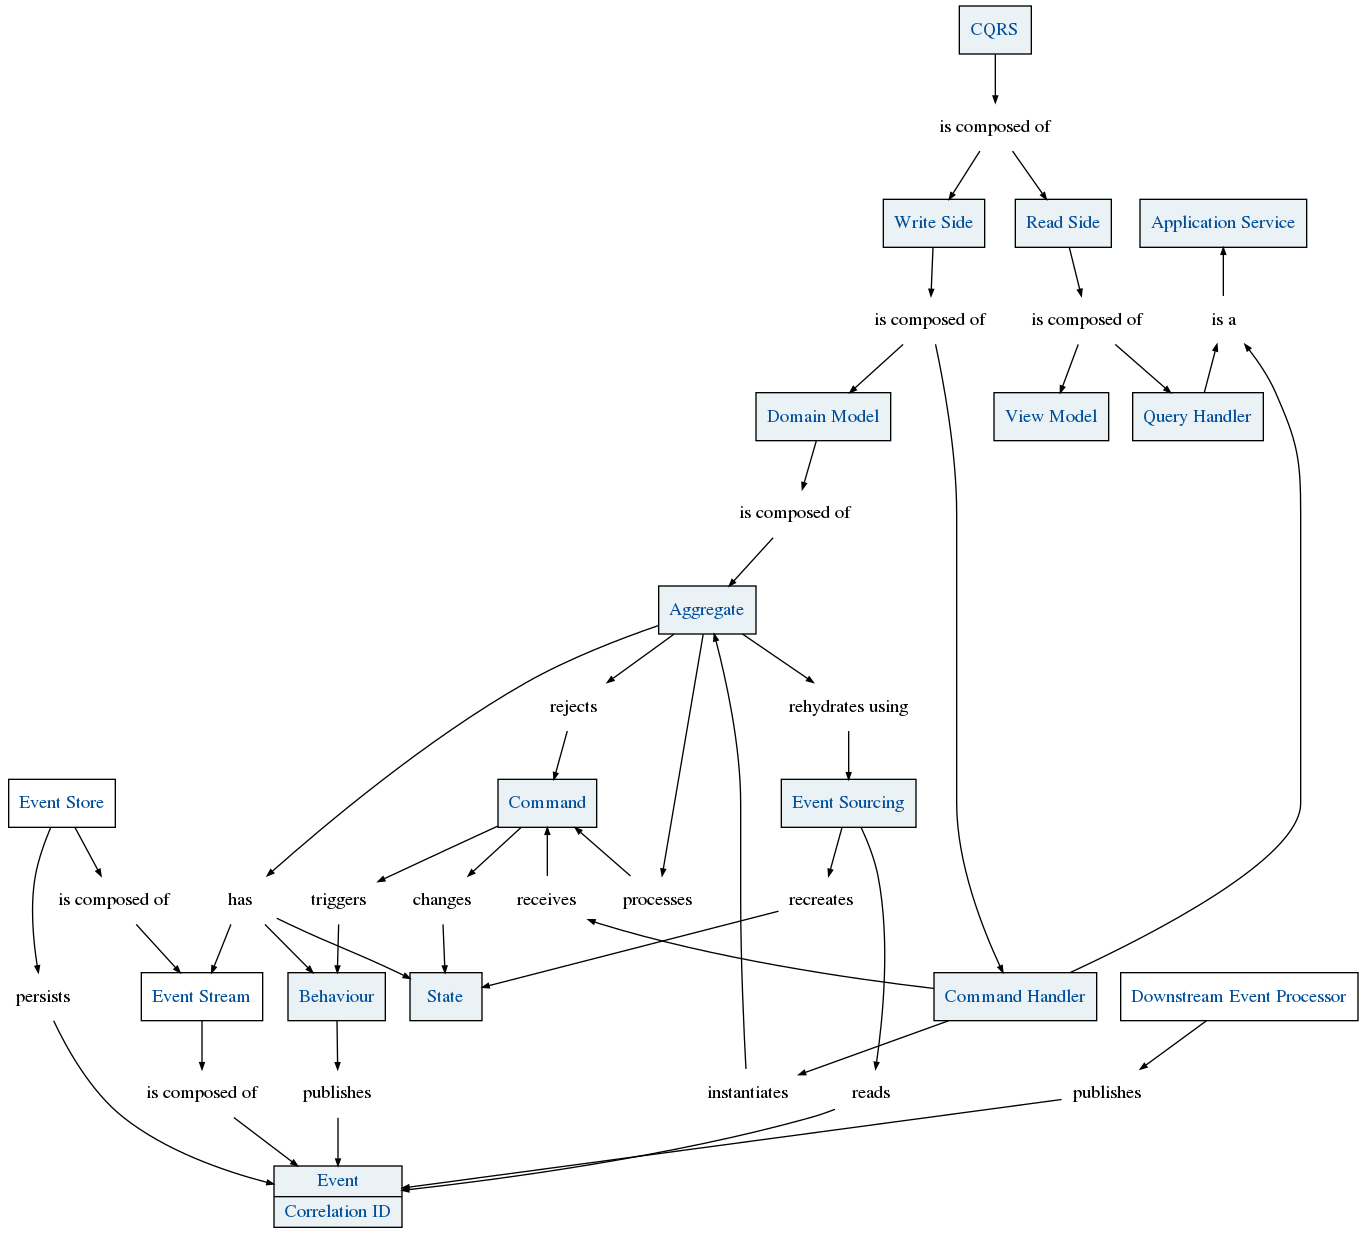 Concept » CQRS And Event Sourcing » Key Concept - conceptmaps.io on